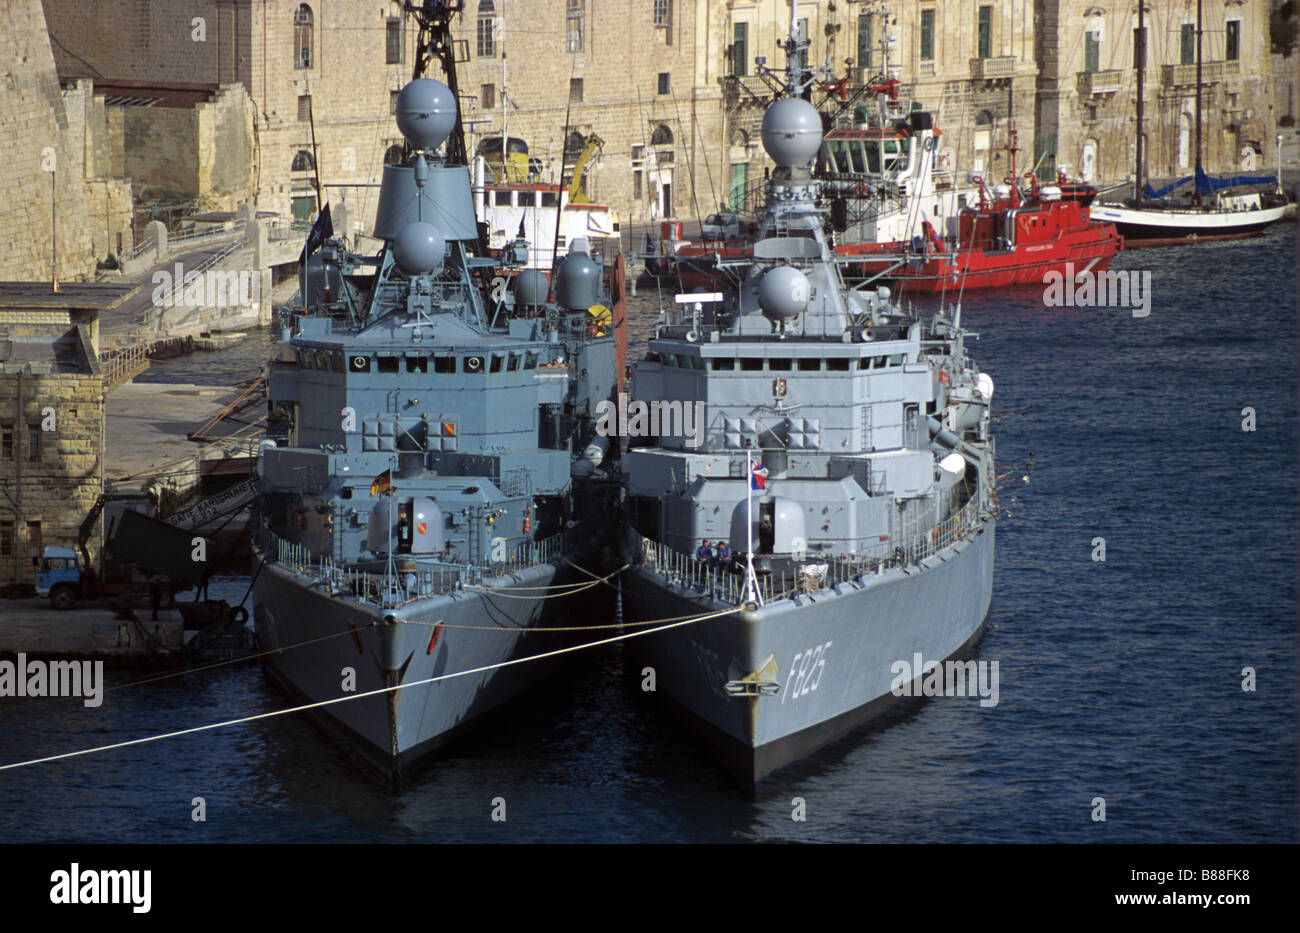 Battle Ships or Naval Ships in the Grand Harbour or Harbor of Valletta, Malta - Stock Image